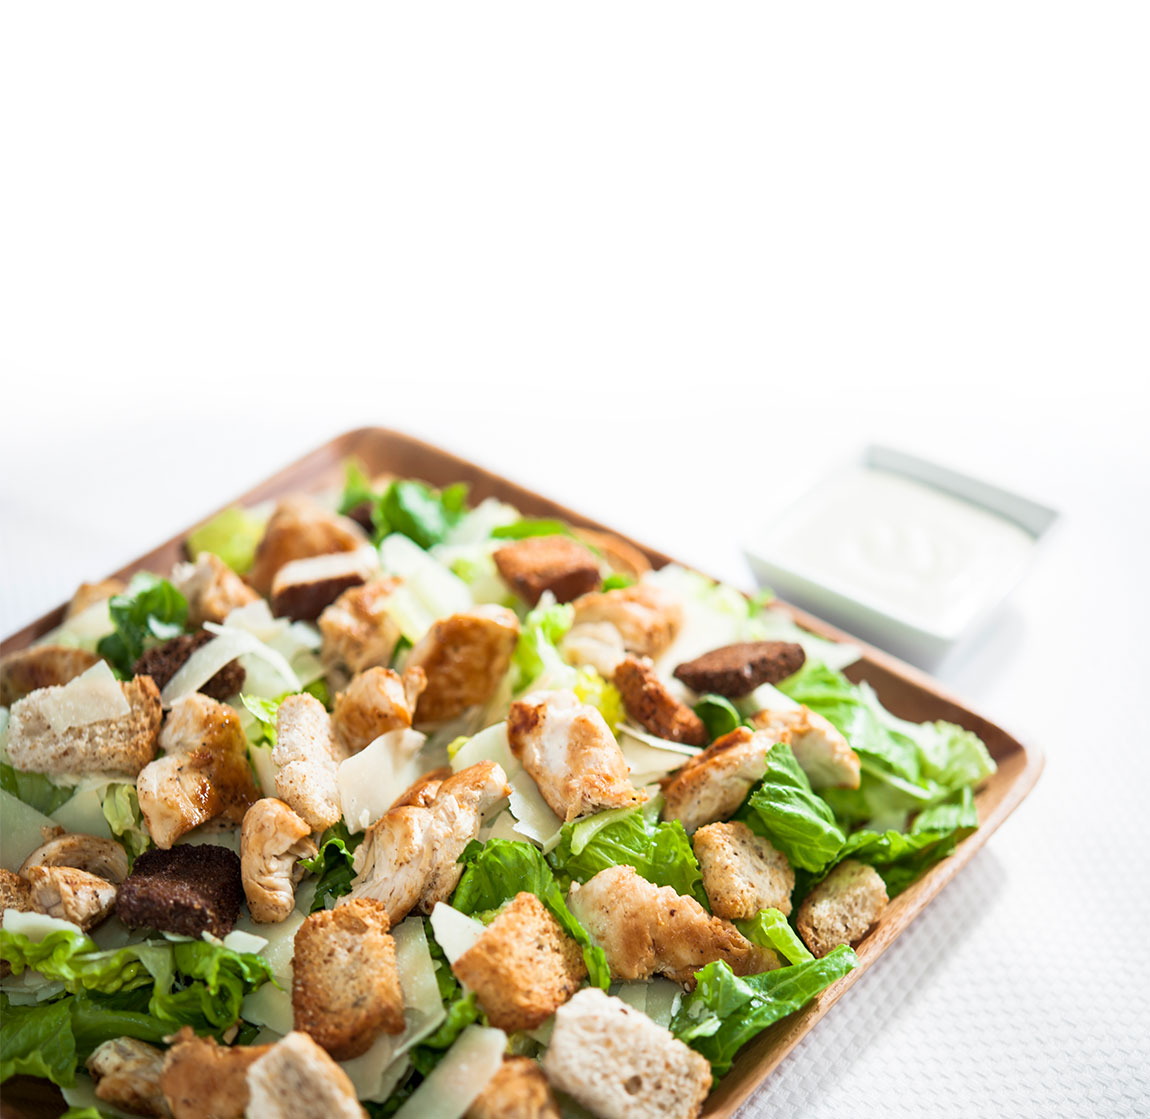 Salad on a square plate.